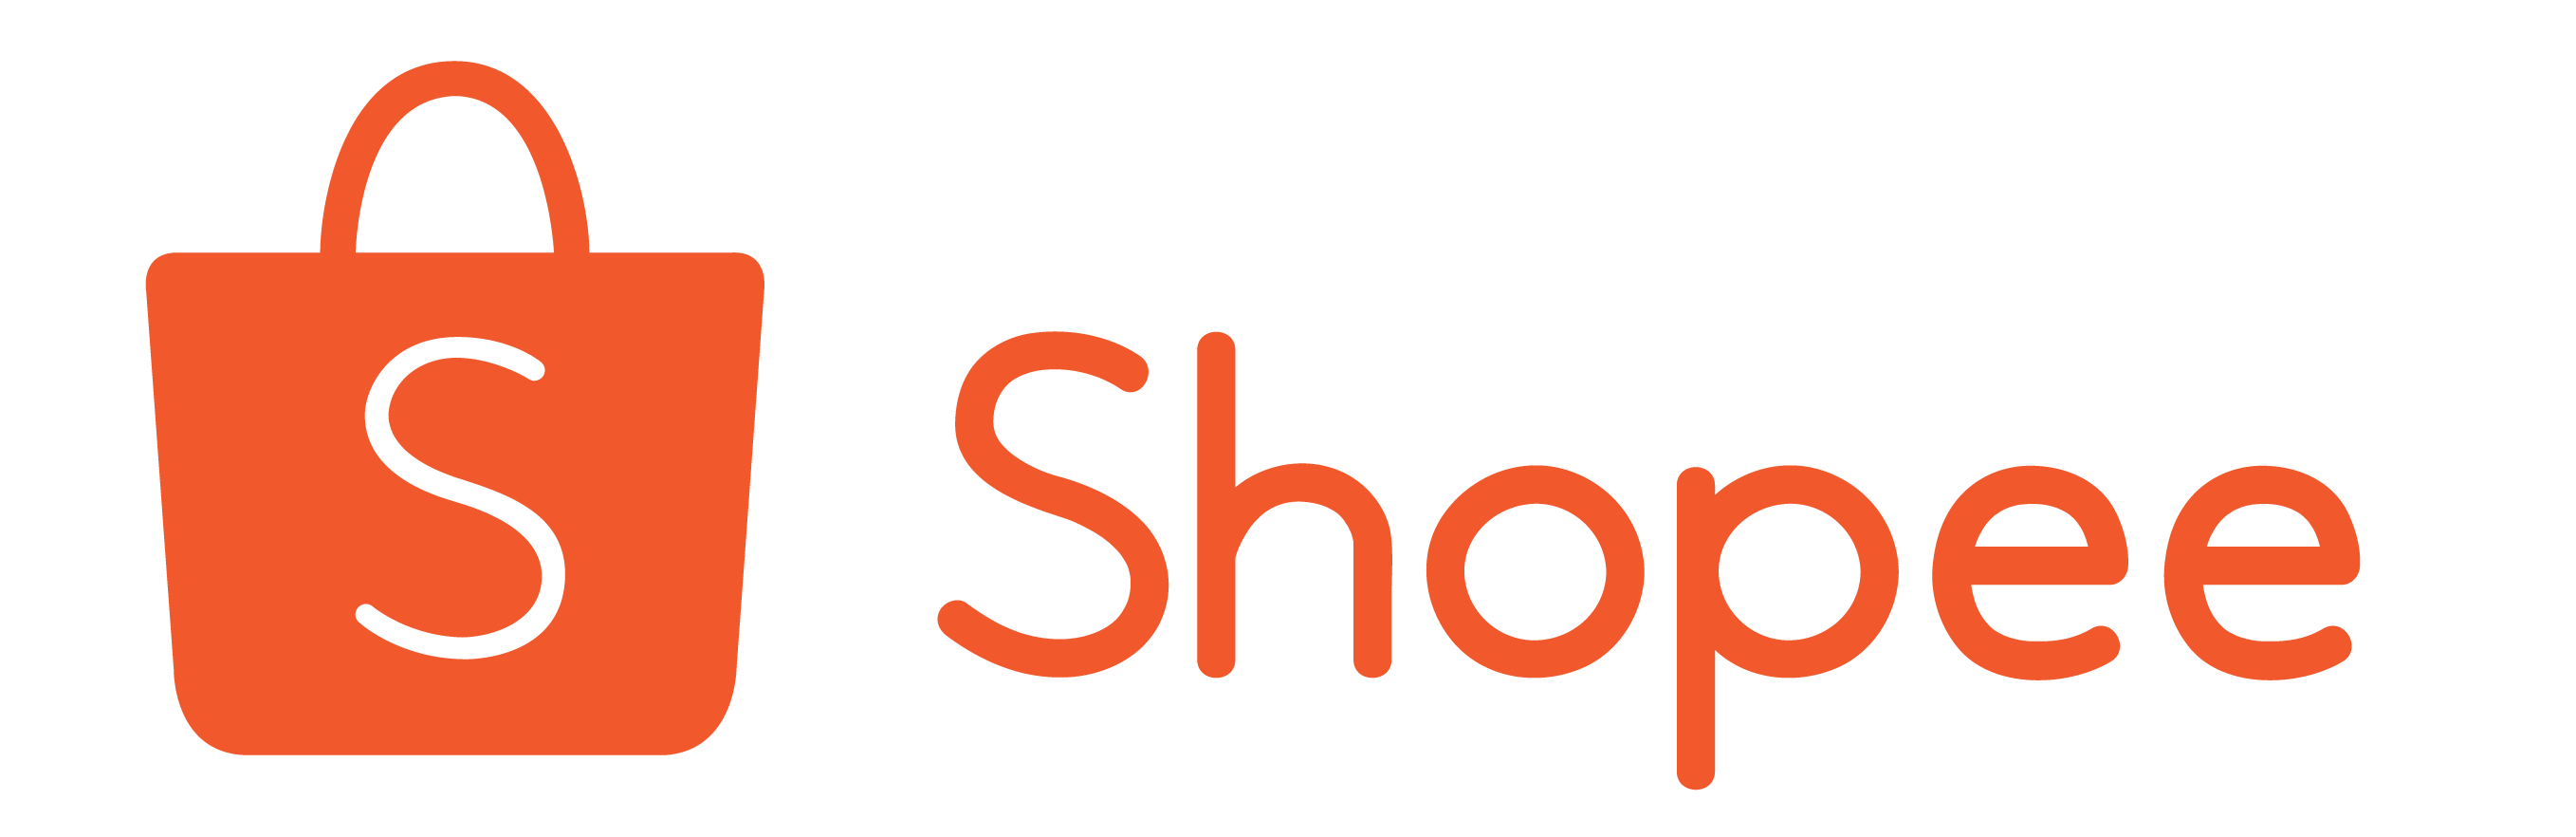 shopee logo png images free download shopee icon free transparent png logos shopee logo png images free download